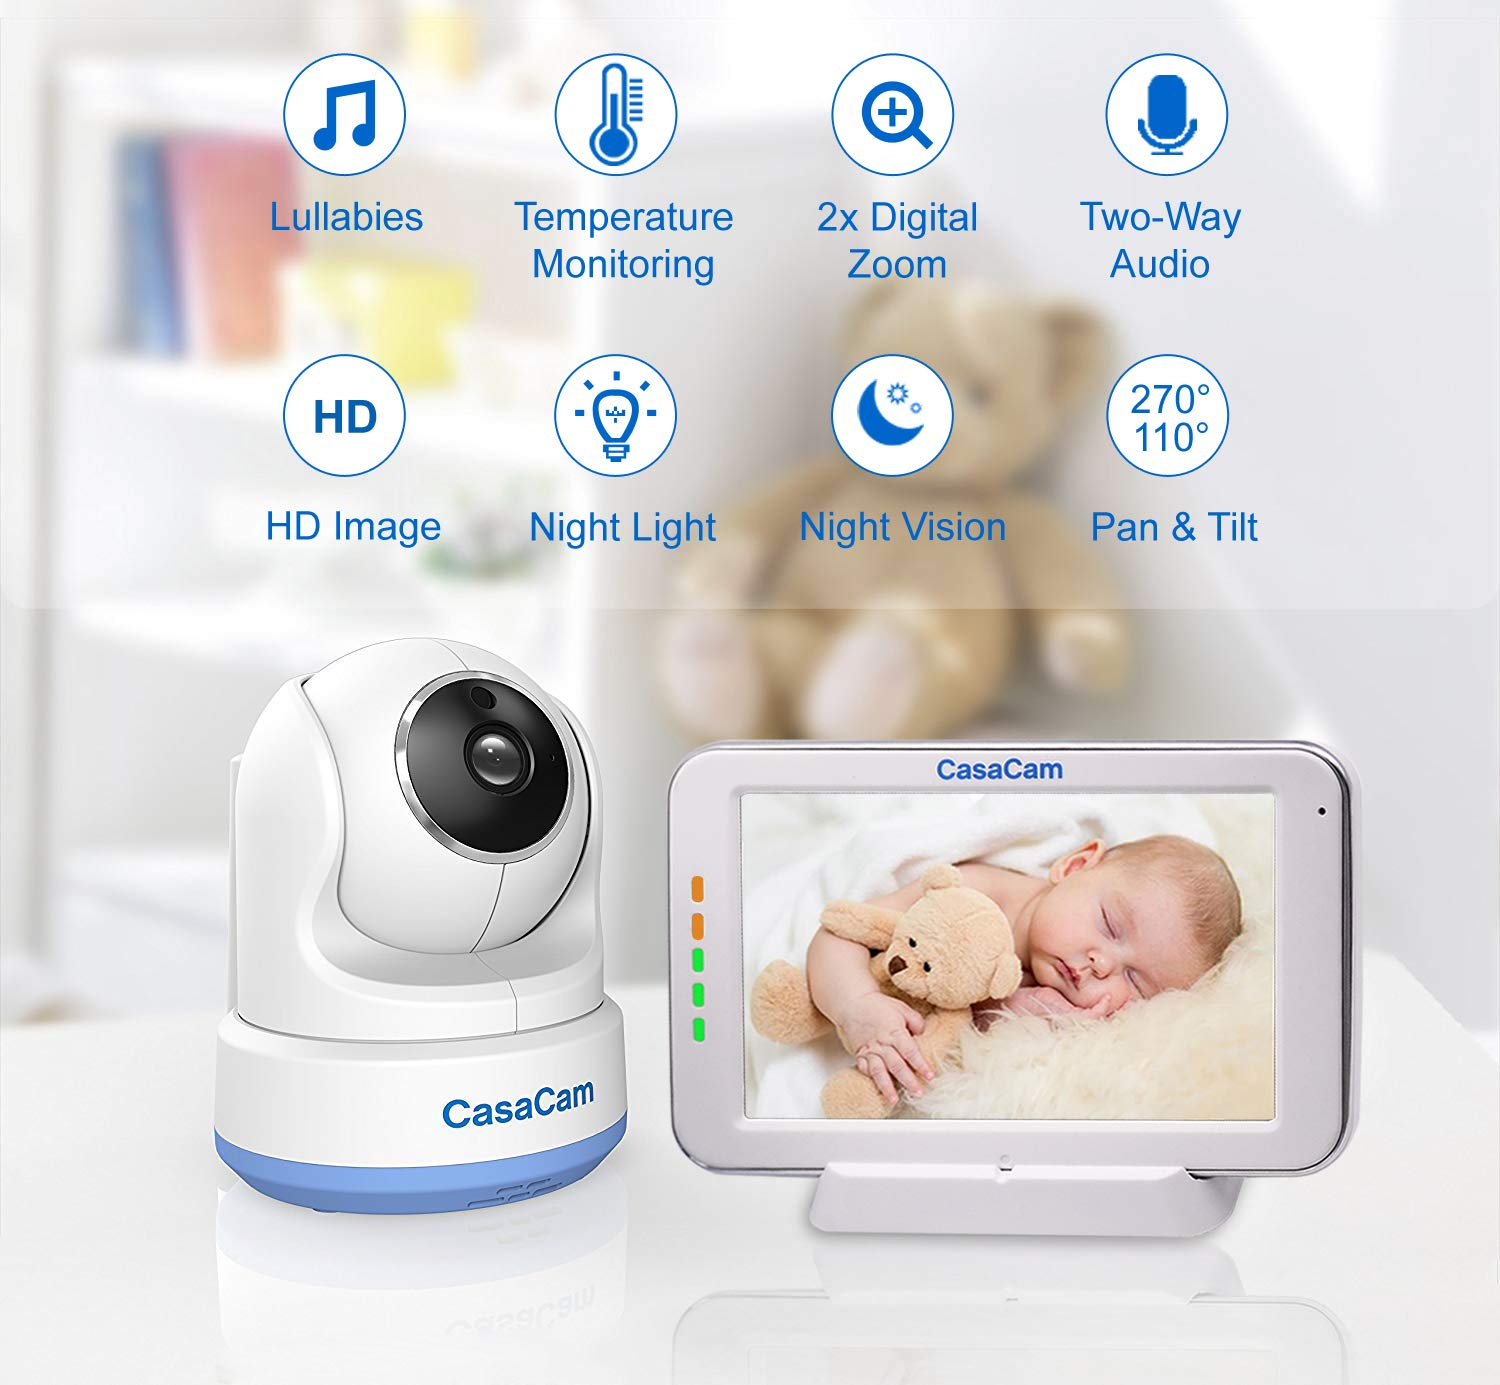 CasaCam BM200 Video Baby Monitor with 5'' Touchscreen and HD Pan & Tilt Camera, Two Way Audio, Lullabies, Nightlight, Automatic Night Vision and Temperature Monitoring Capability (1-cam kit) by CasaCam (Image #2)